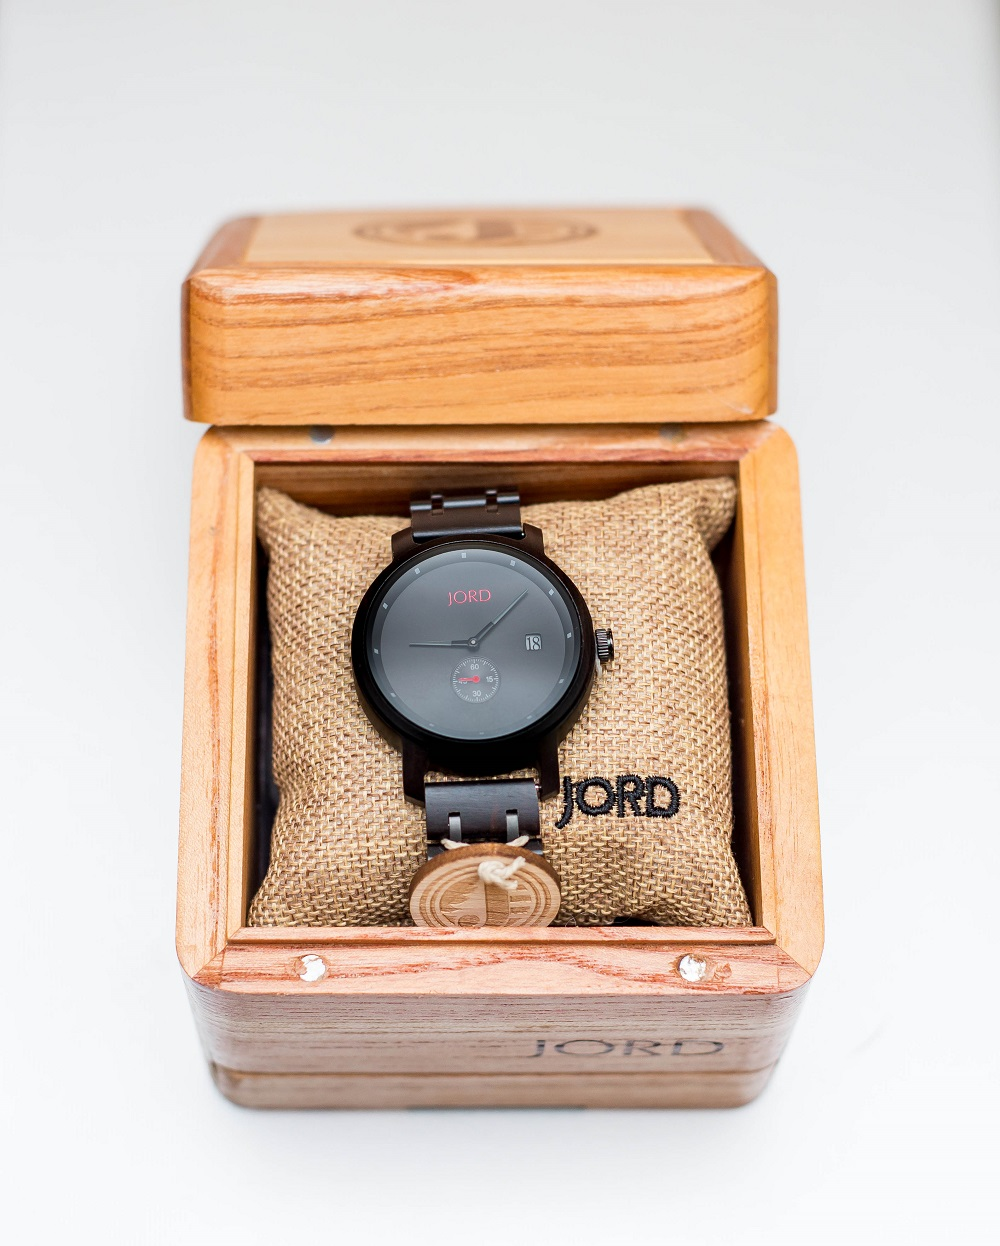 http://www.woodwatches.com/#zinnyfactor